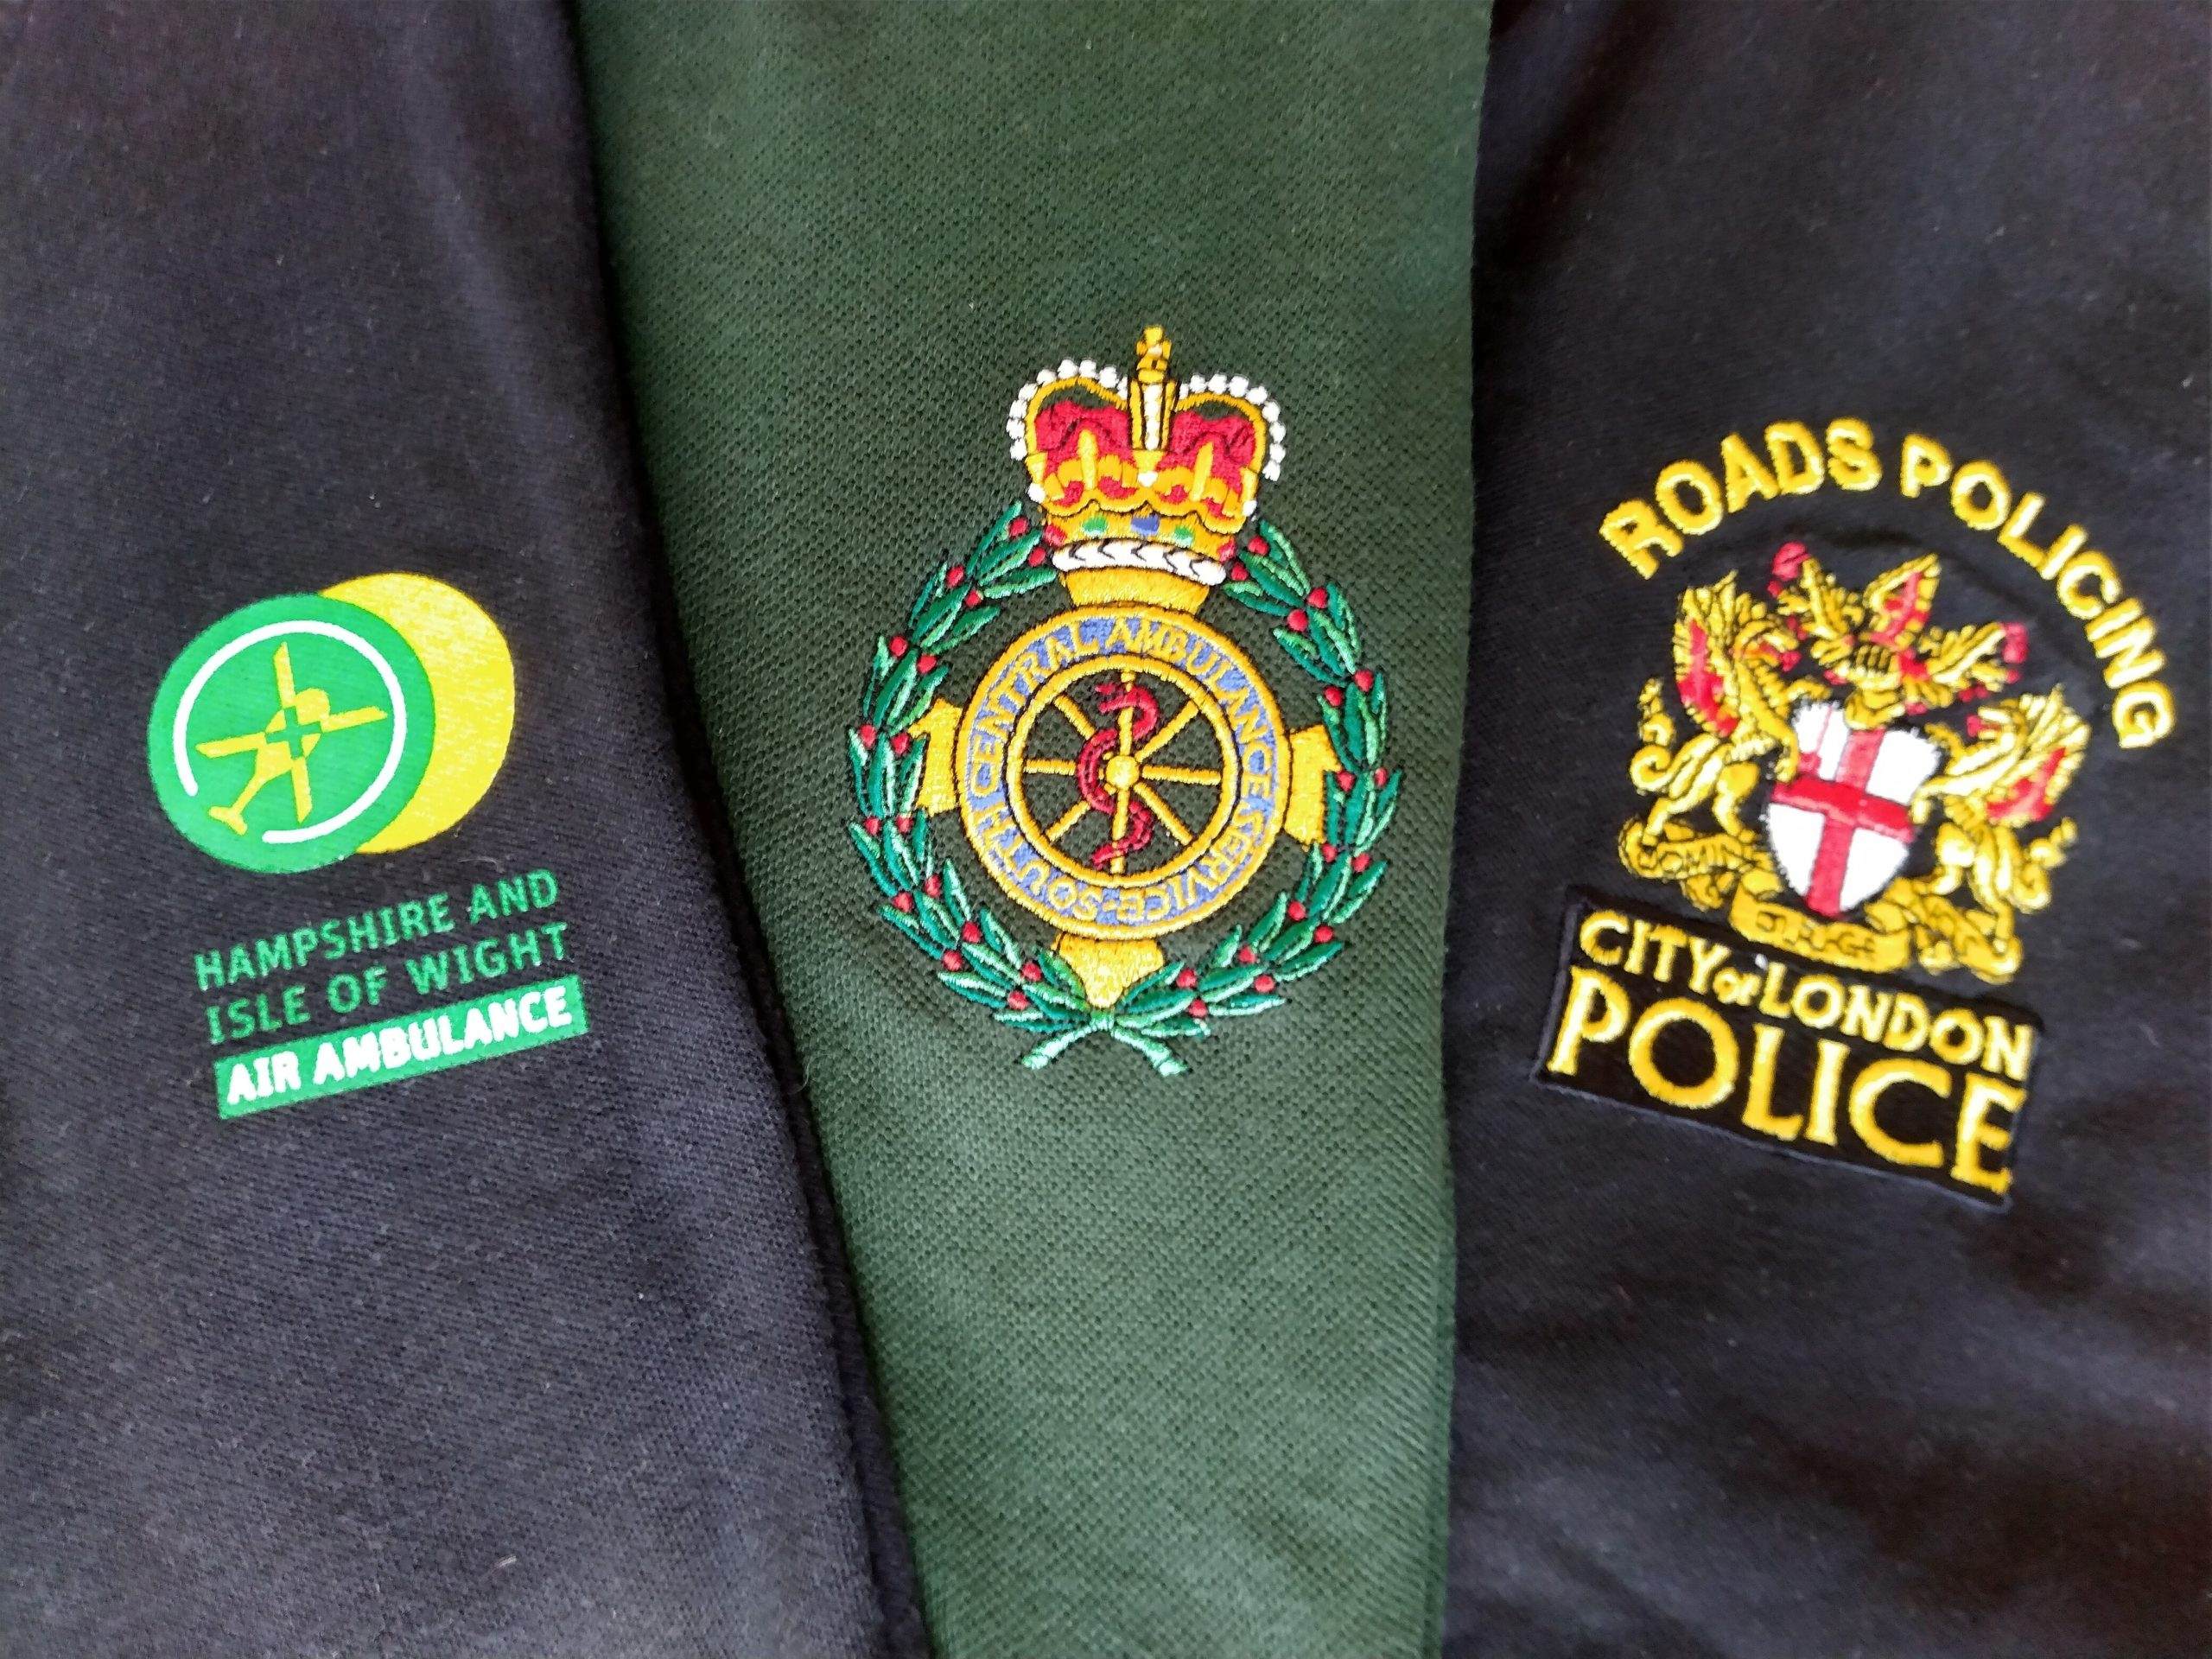 The top of the arms of three t-shirts. Each one has a logo on it. The first is the HIOWAA logo. Second is South Central Ambulance Service and the last is the logo for the London police.